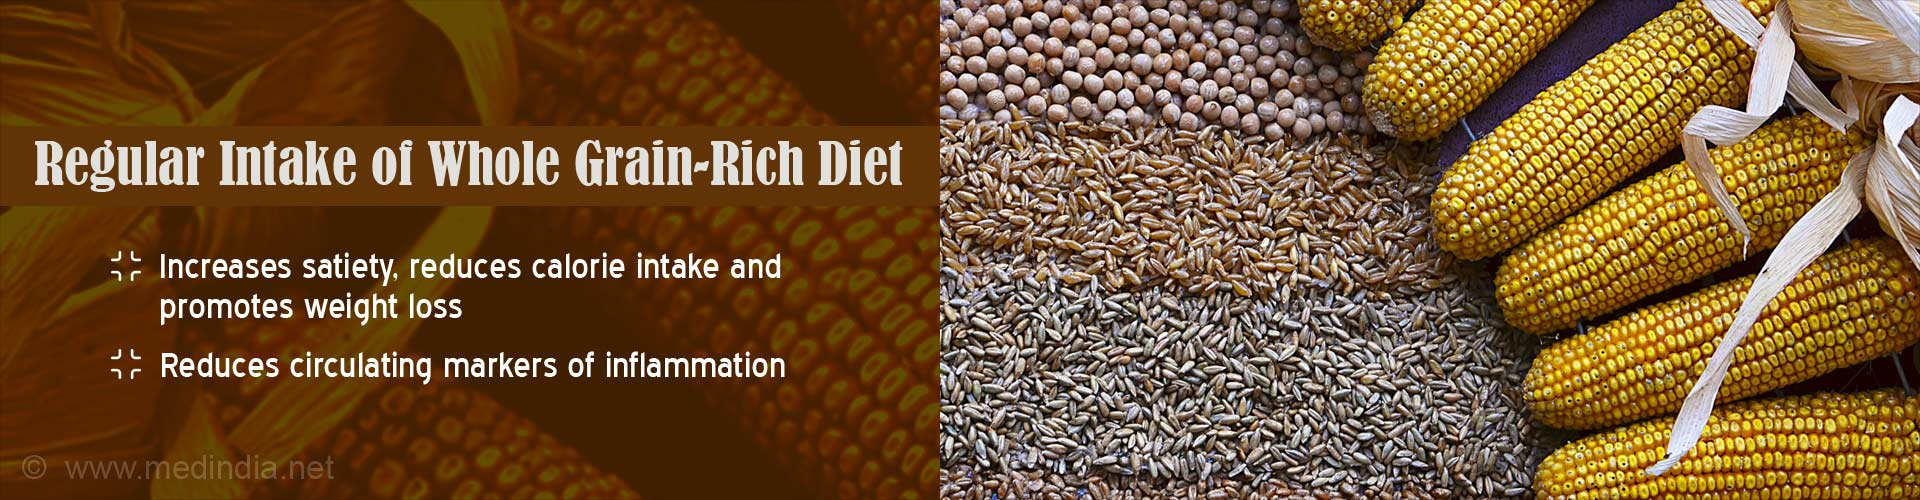 Whole Grains Reduces Inflammation, Helps Lose Weight